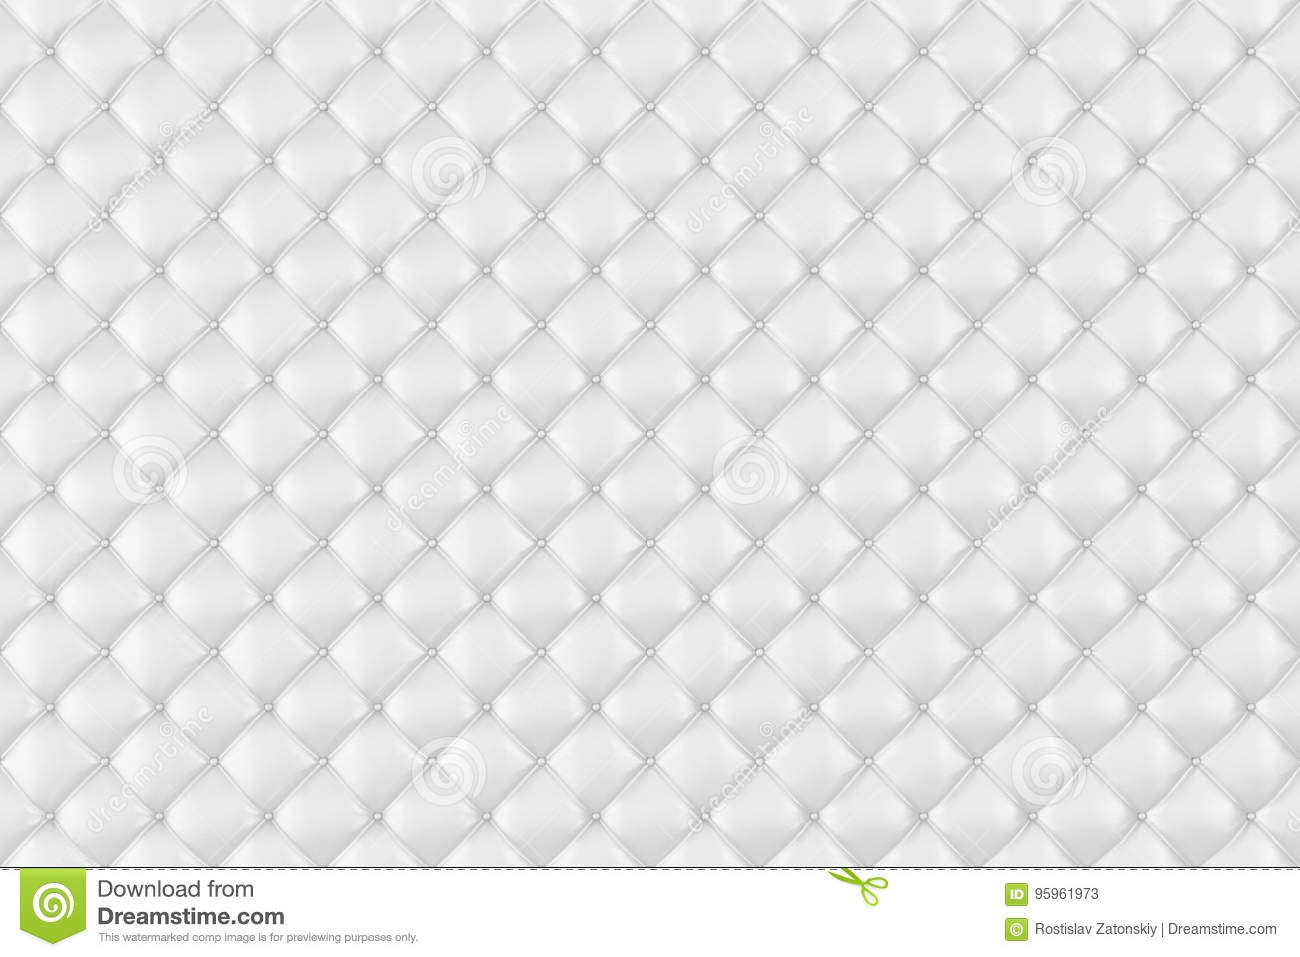 Leather Upholstery Sofa Background White Luxury  : leather upholstery sofa background white luxury decoration sofa elegant white leather texture buttons pattern 95961973 from www.dreamstime.com size 1300 x 957 jpeg 87kB